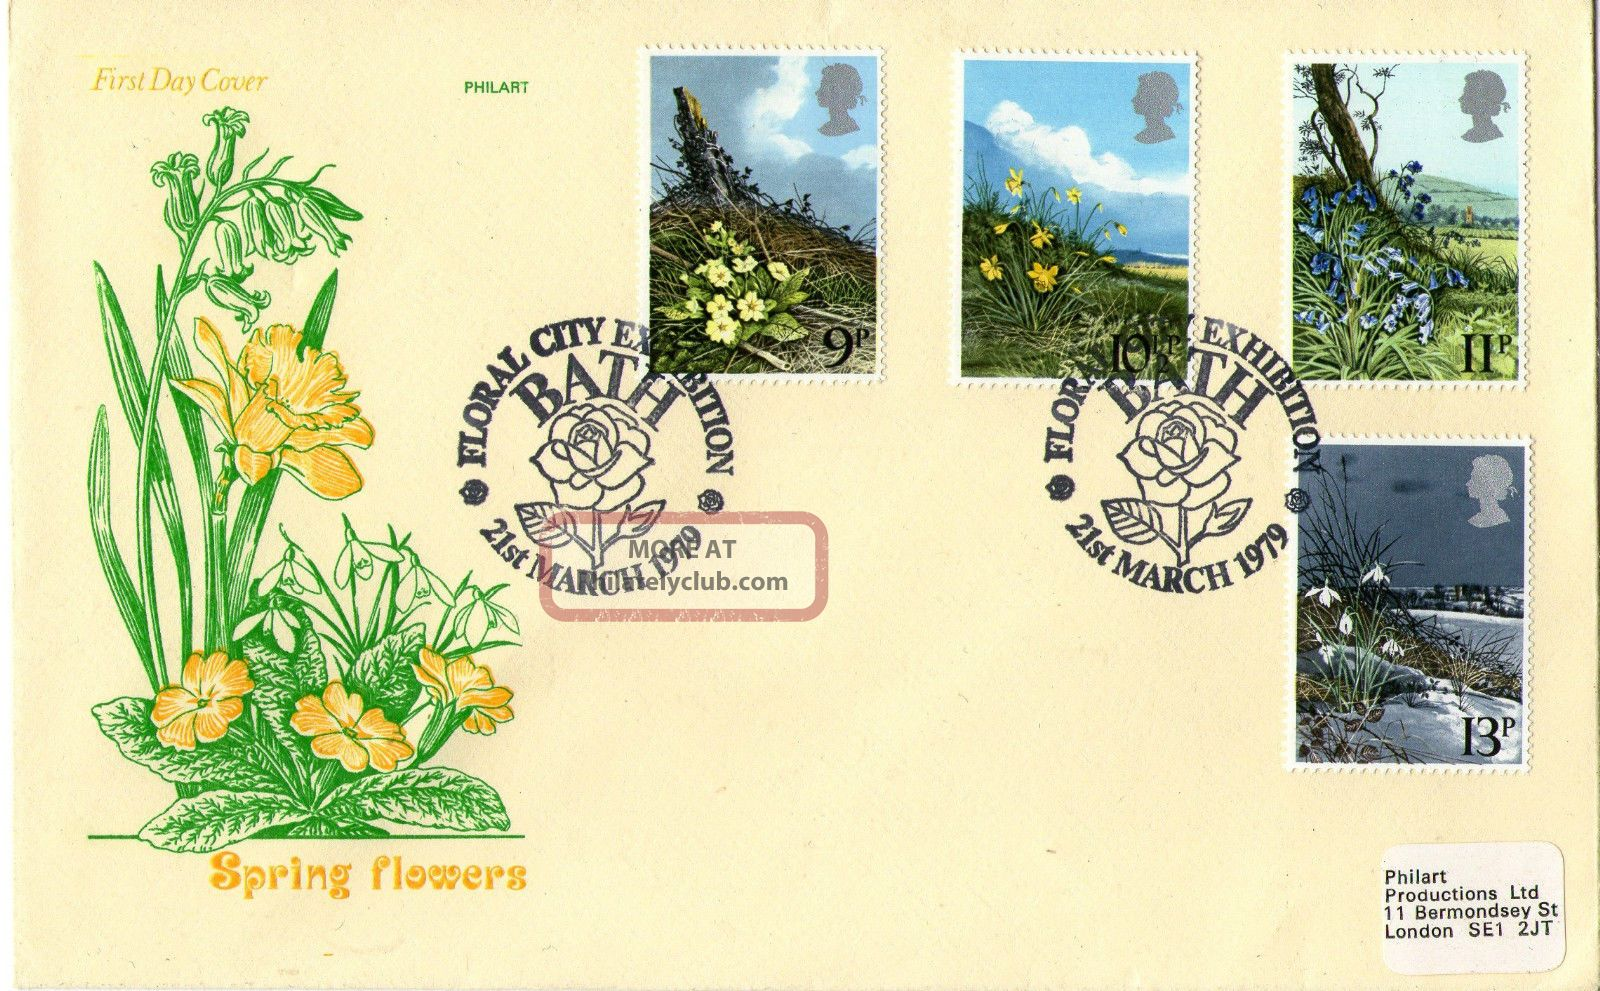 21 March 1979 Spring Flowers Philart First Day Cover Floral City Bath Shs Topical Stamps photo